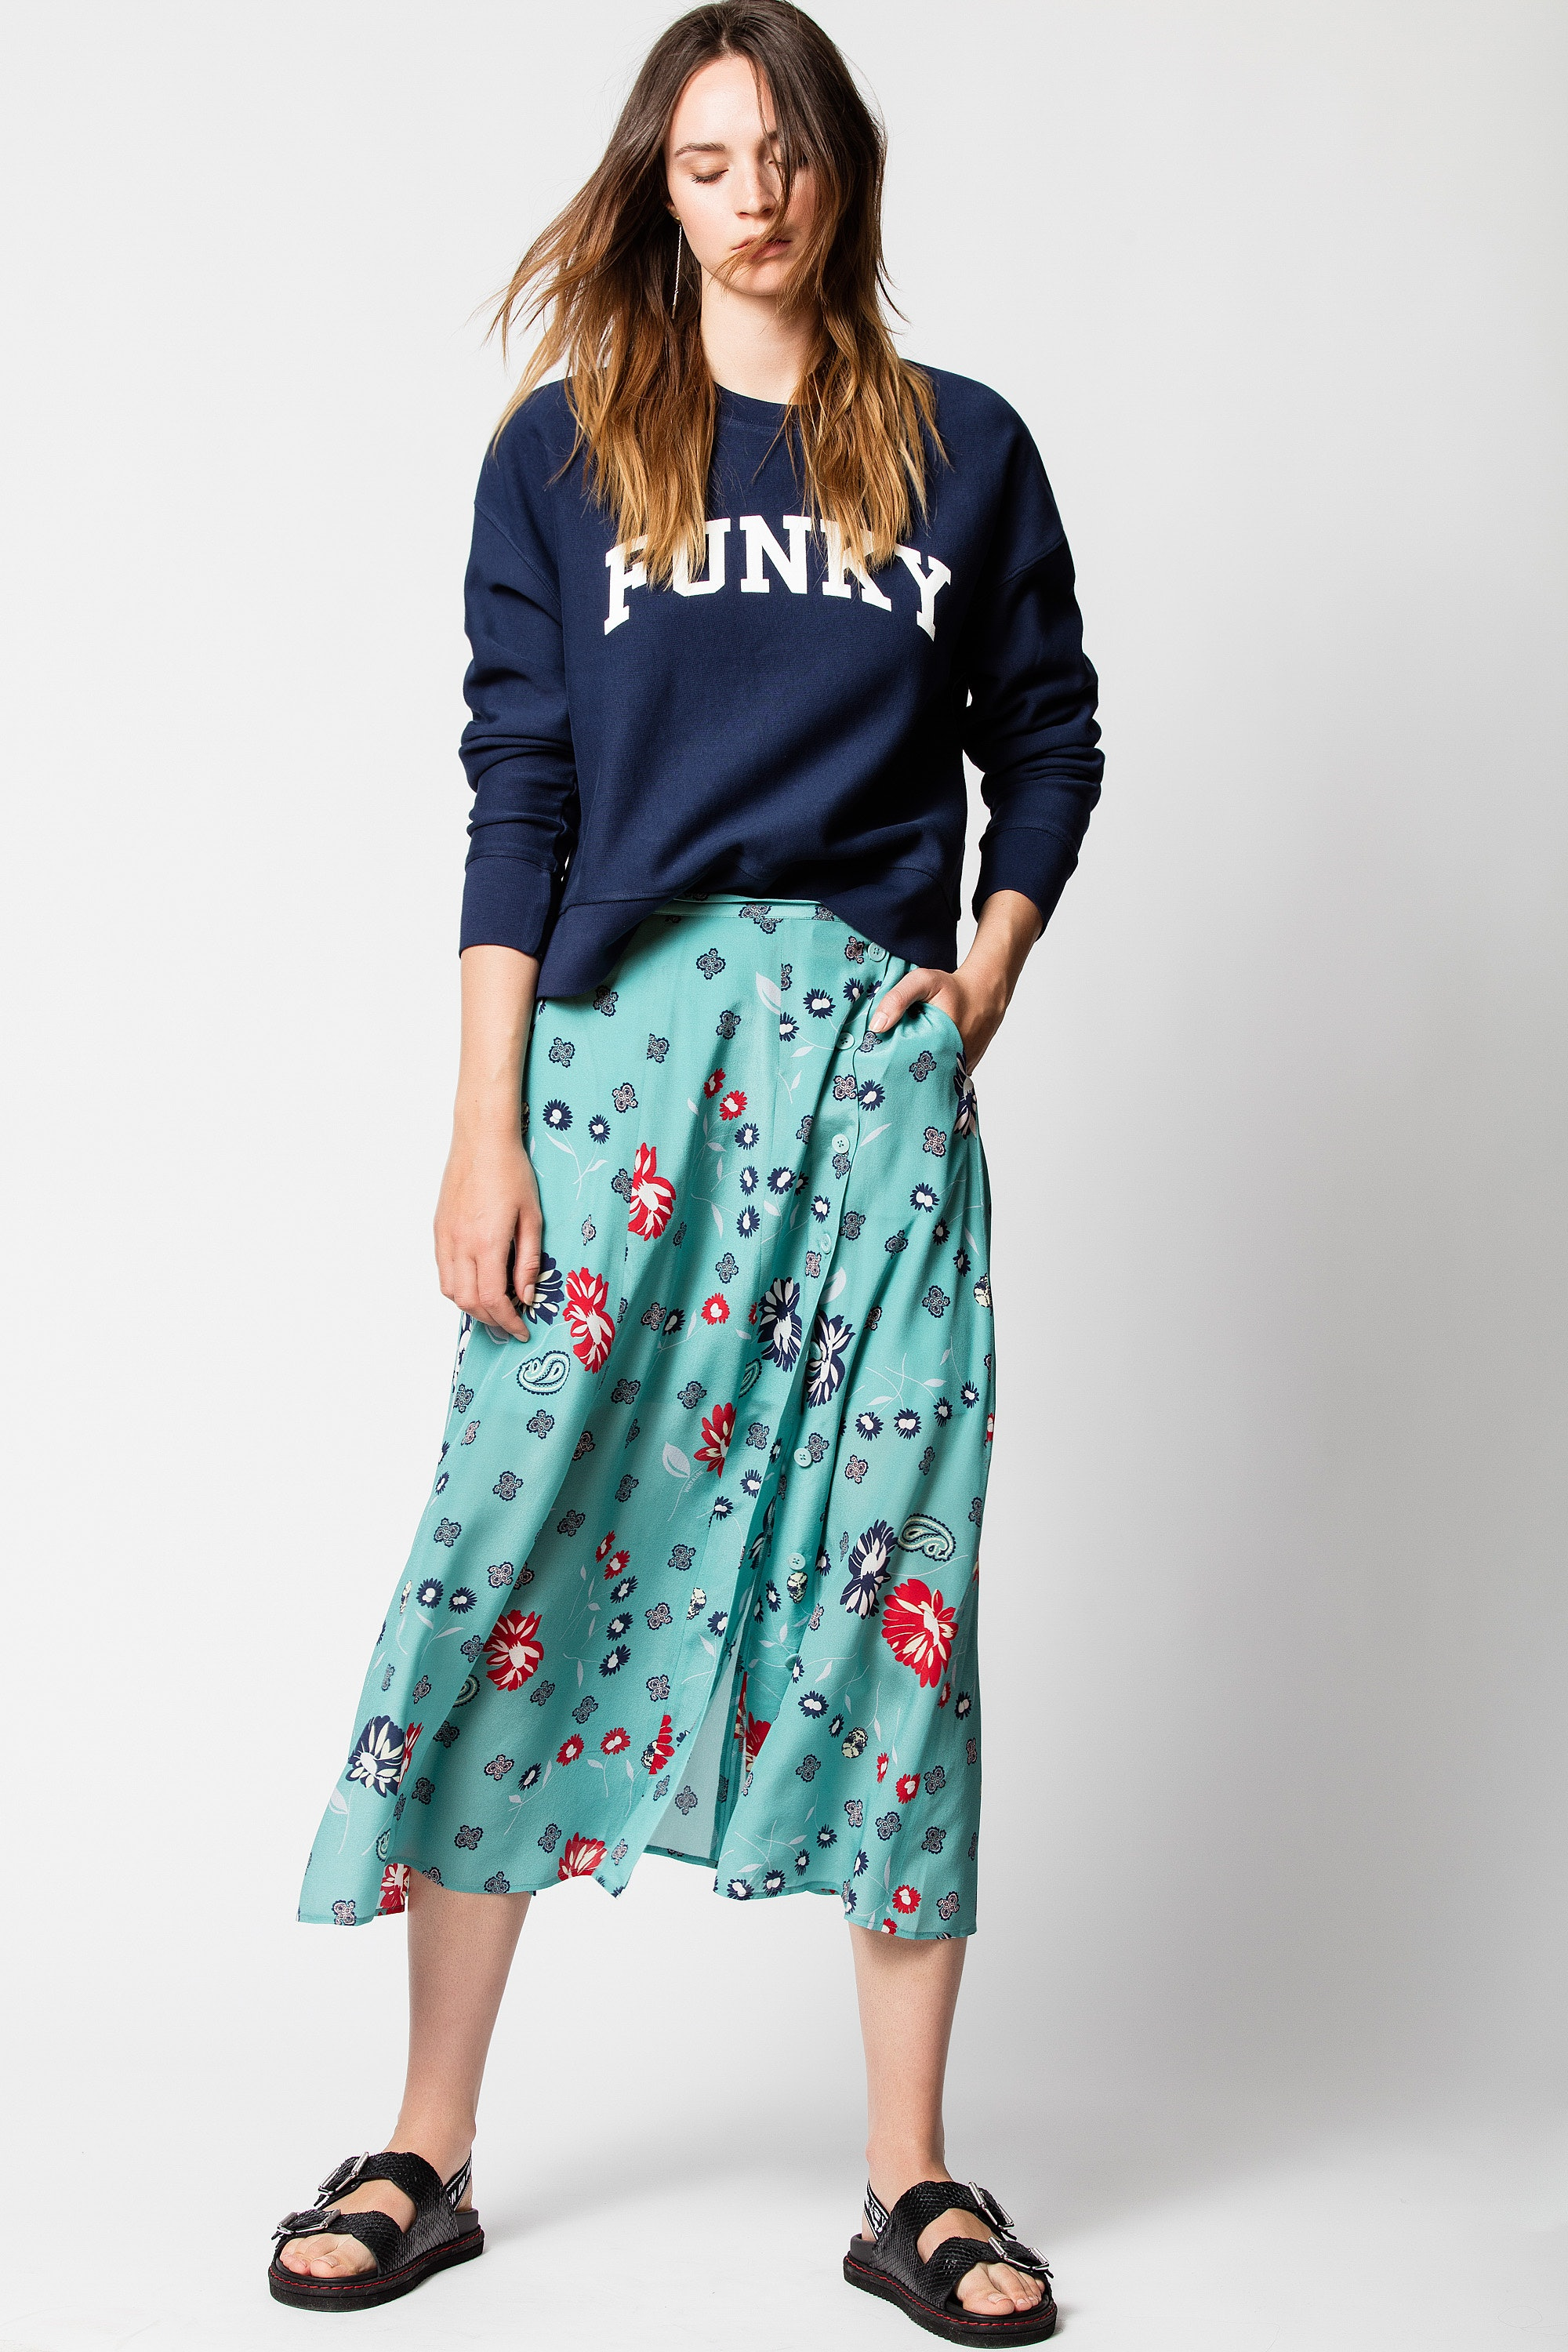 June Daisy Skirt